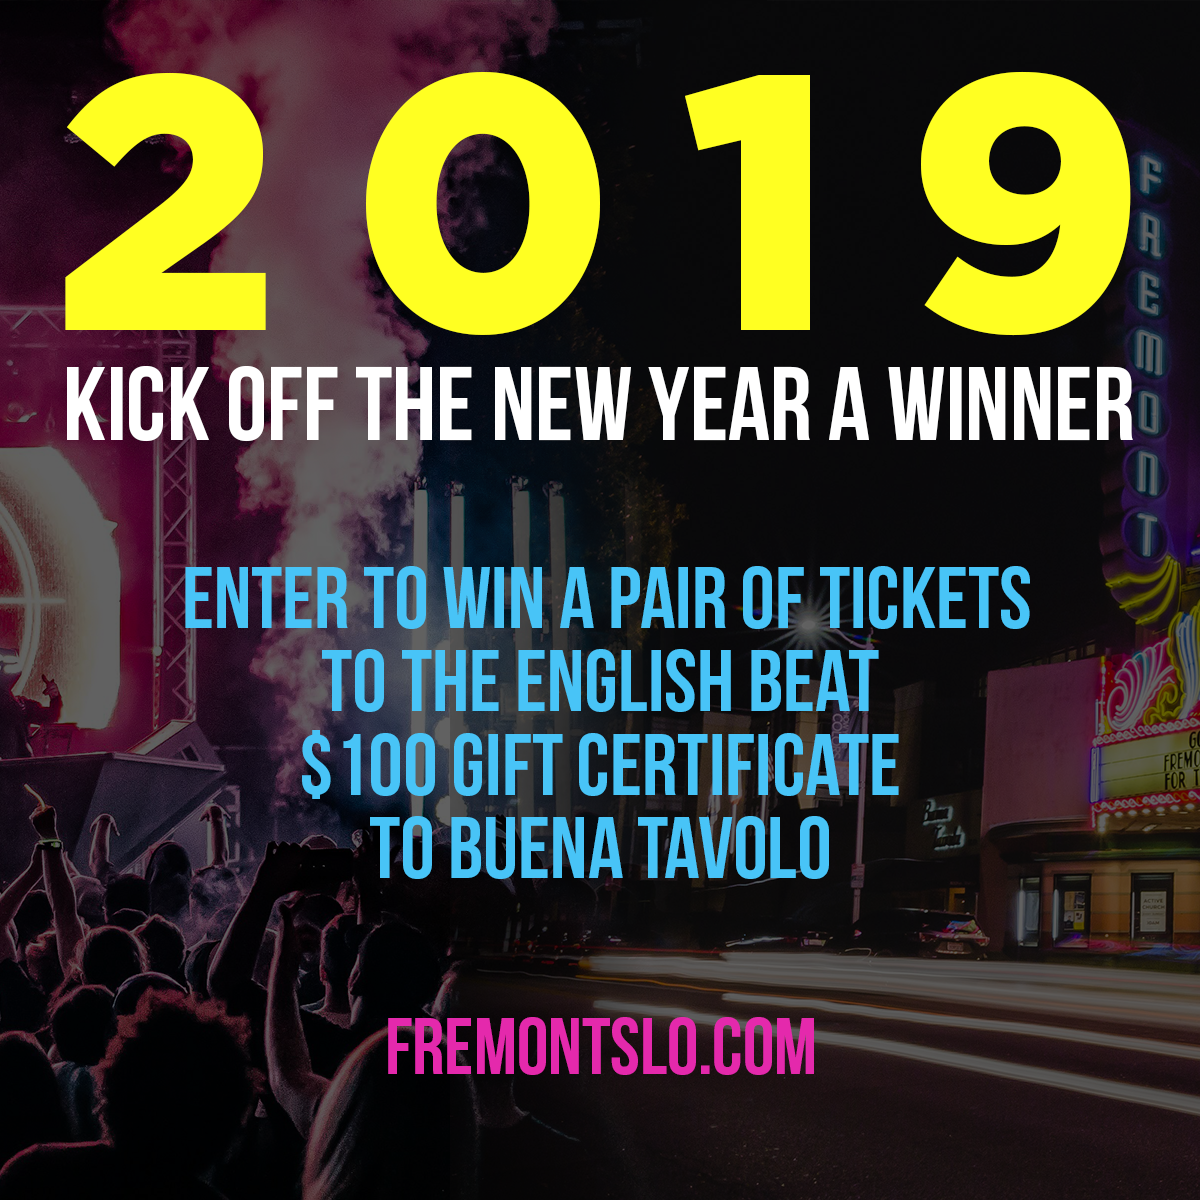 Enter To Win A New Year's Eve Prize Package! The english